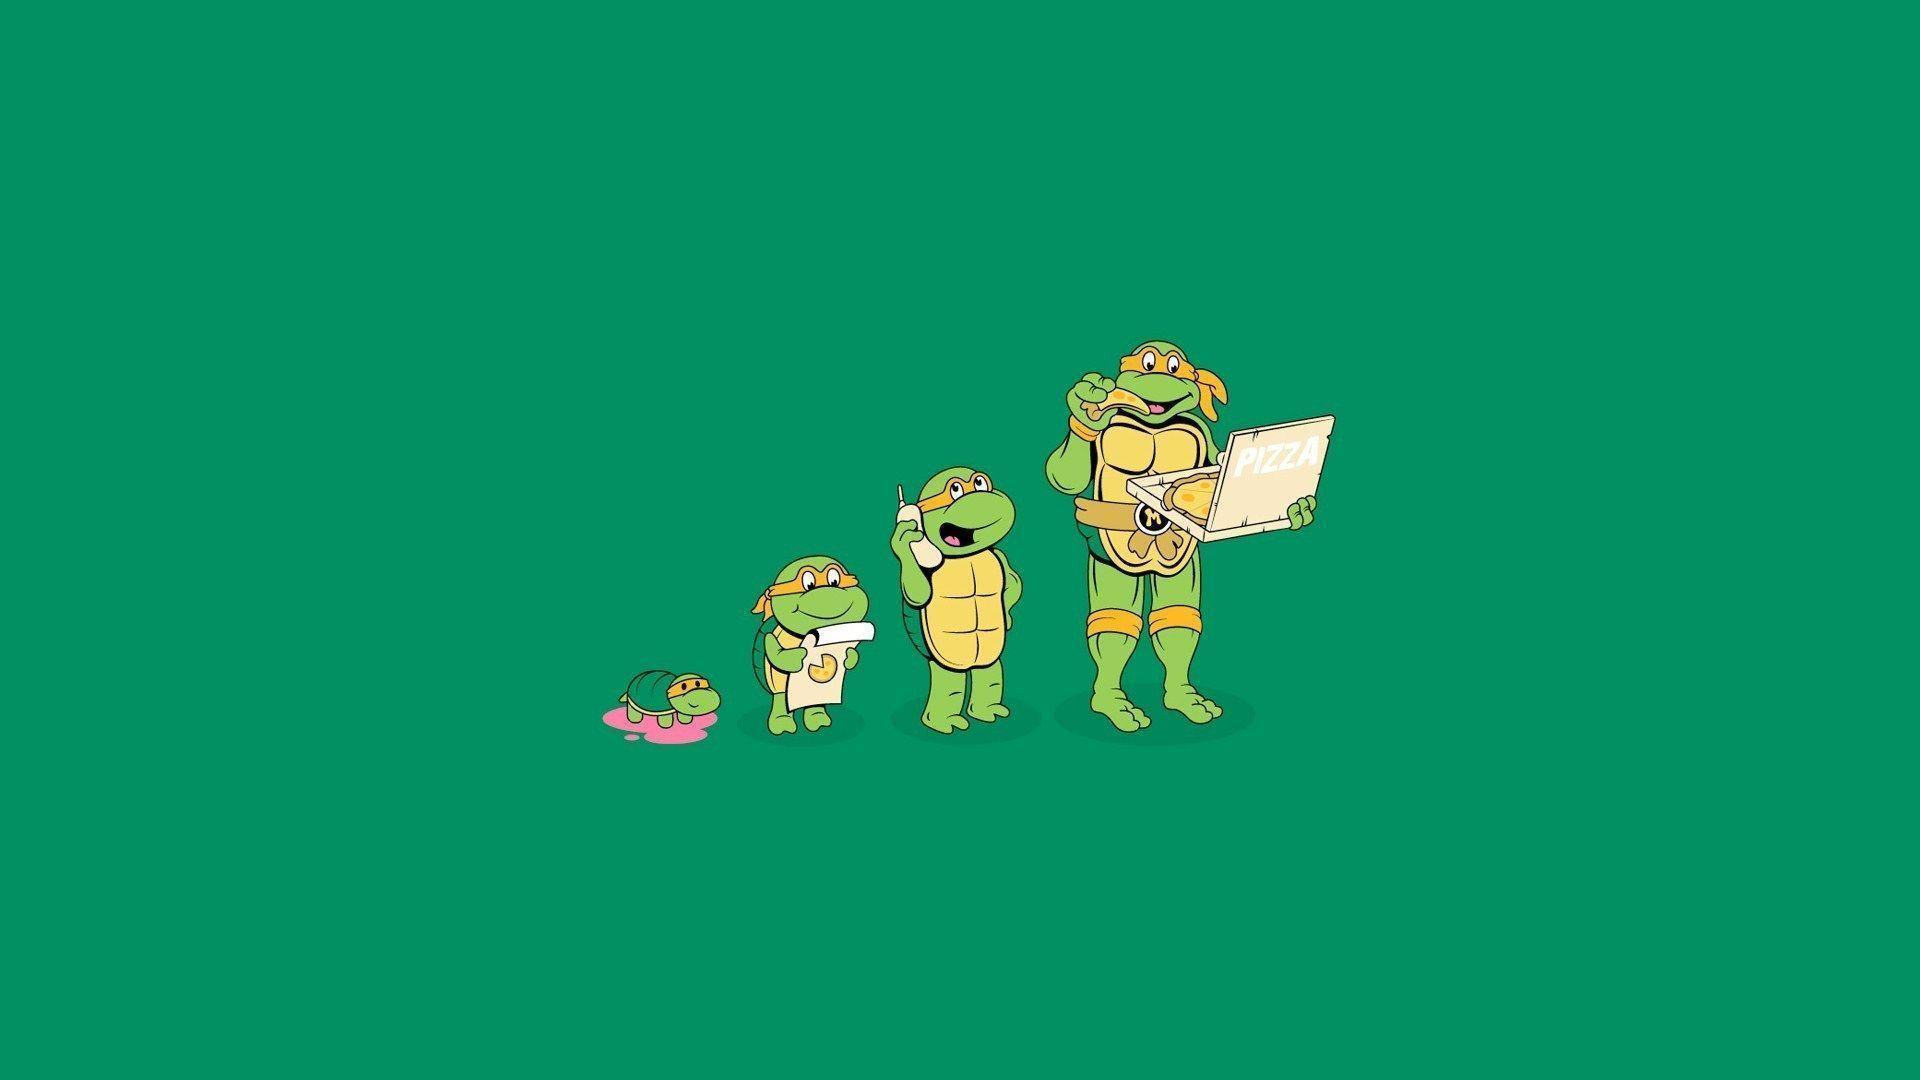 Cartoon Michelangelo Teenage Mutant Ninja Turtles Hd Wallpaper